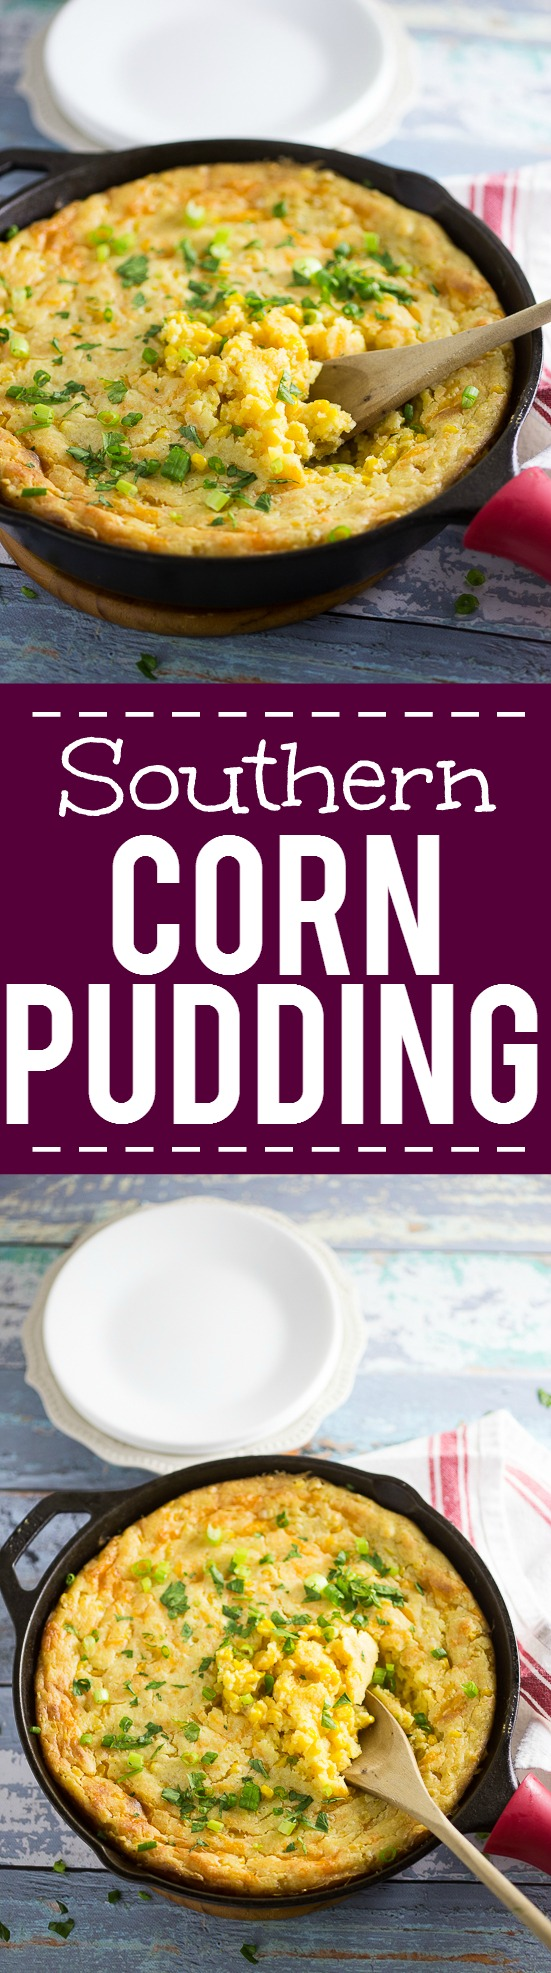 Oven Baked Southern Corn Pudding Recipe - Use this classic Southern Corn Pudding recipe to whip some delicious, cozy comfort food that's the perfect side dish with your favorite meat and potatoes. Also great for potlucks and holidays! This is such an easy and delicious corn side dish recipe! You can't go wrong with spoon bread!